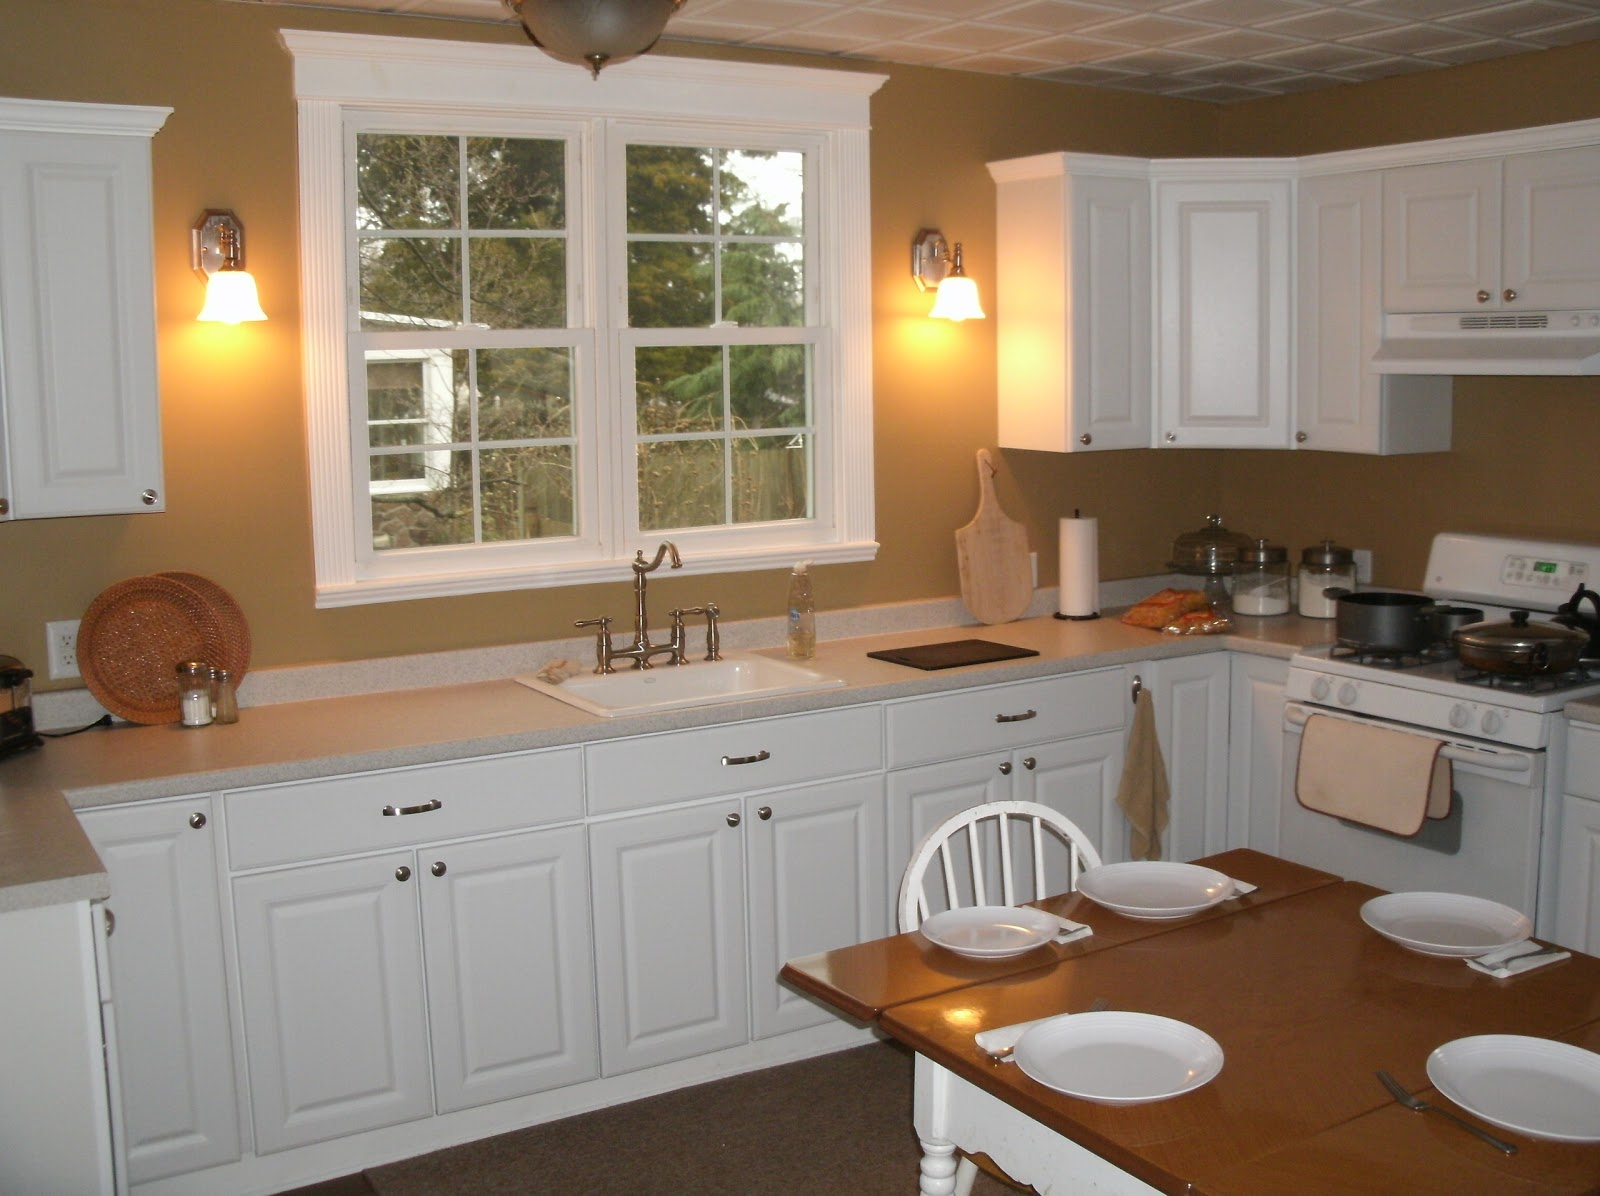 Home remodeling and improvements tips and how to 39 s for Kitchen and remodeling